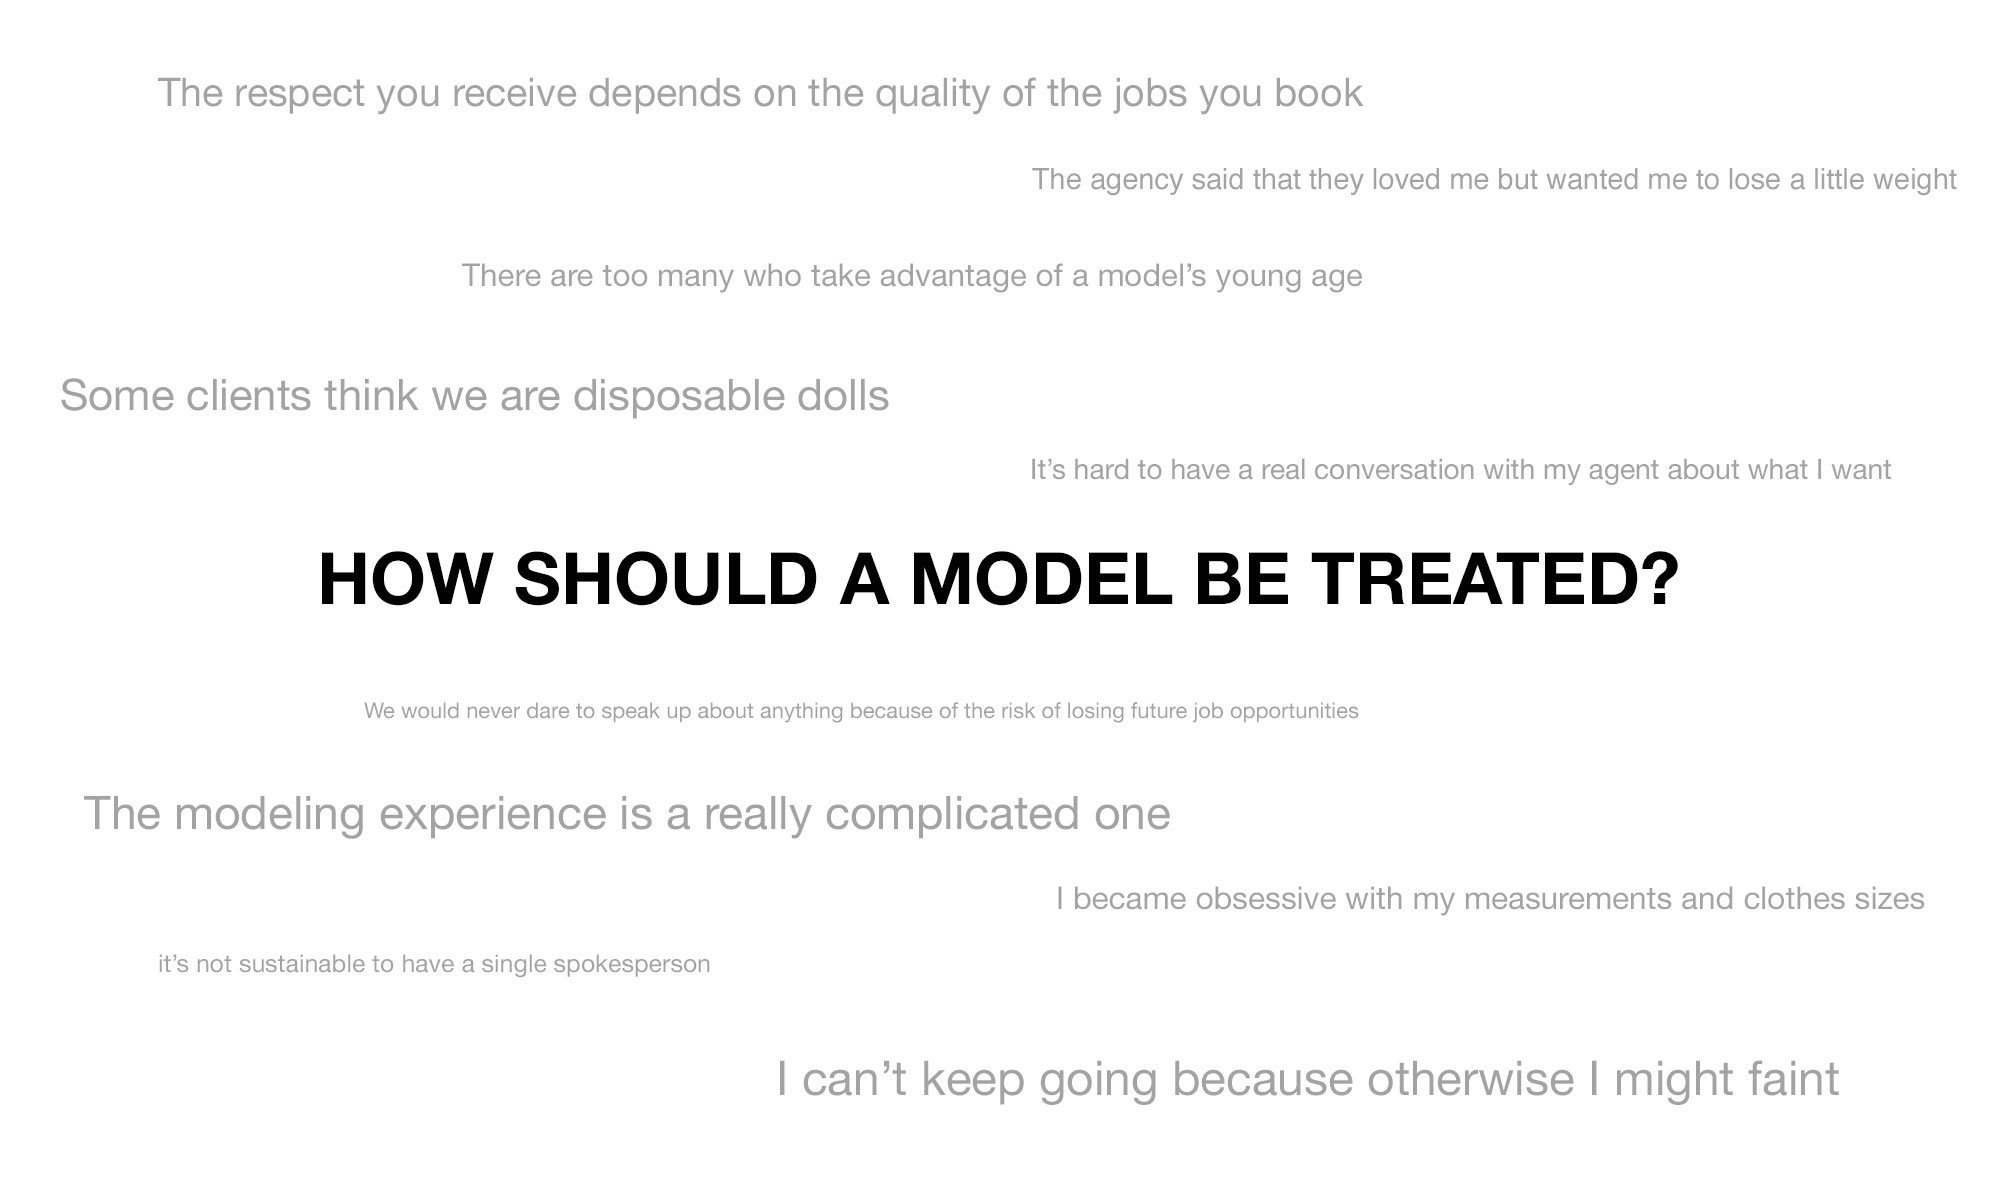 How should a model be treated?